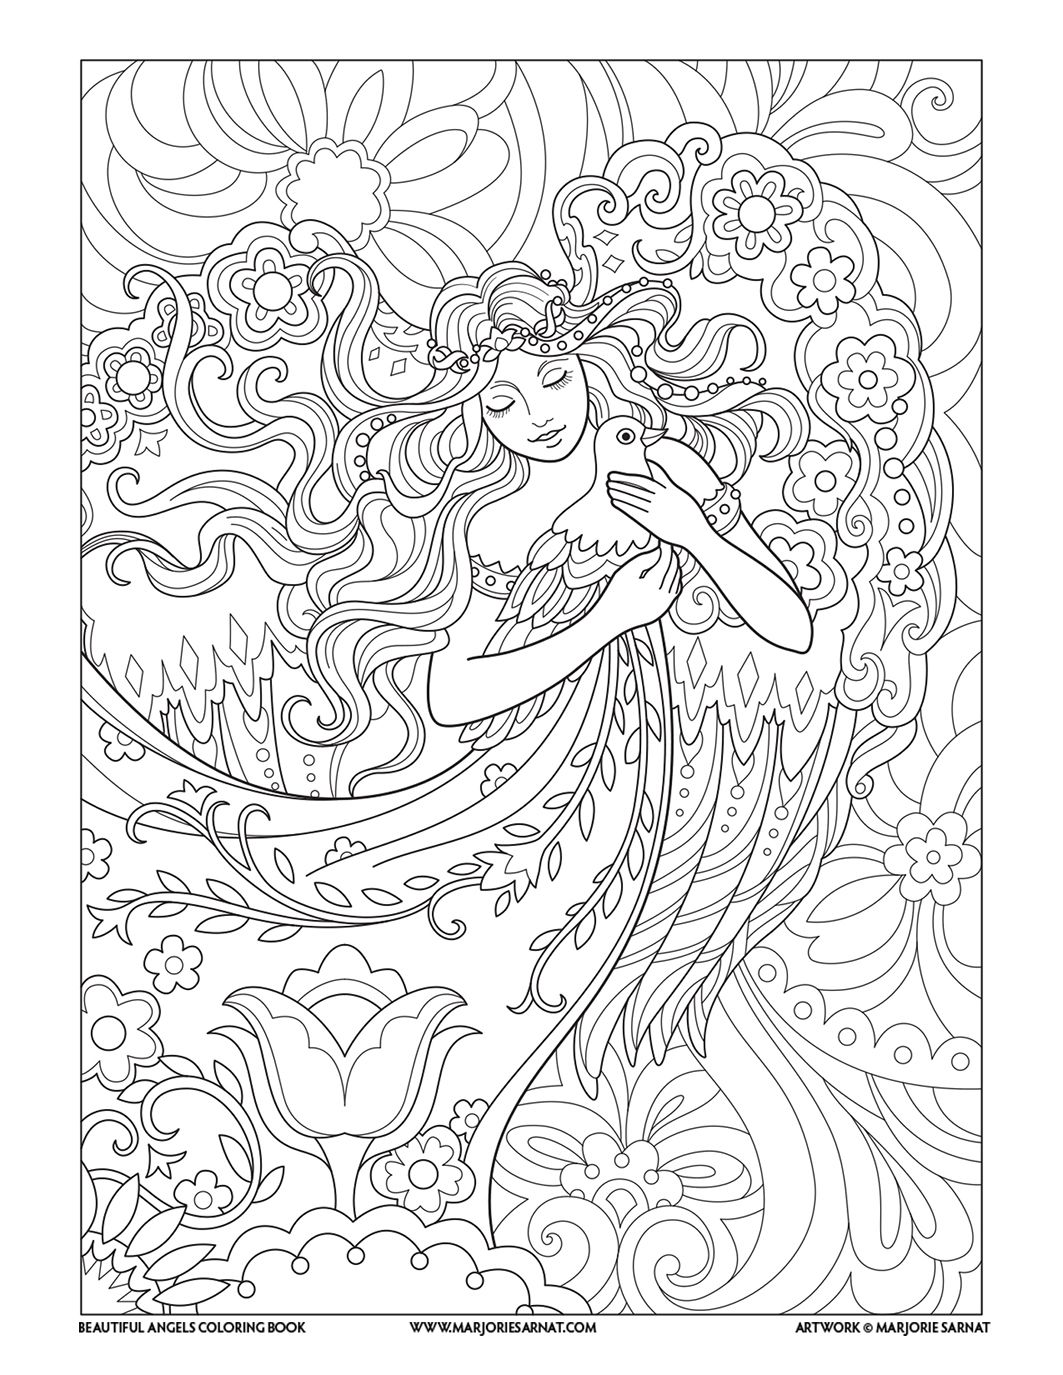 Angel with Dove : Beautiful Angels Coloring Book | Marjorie ...